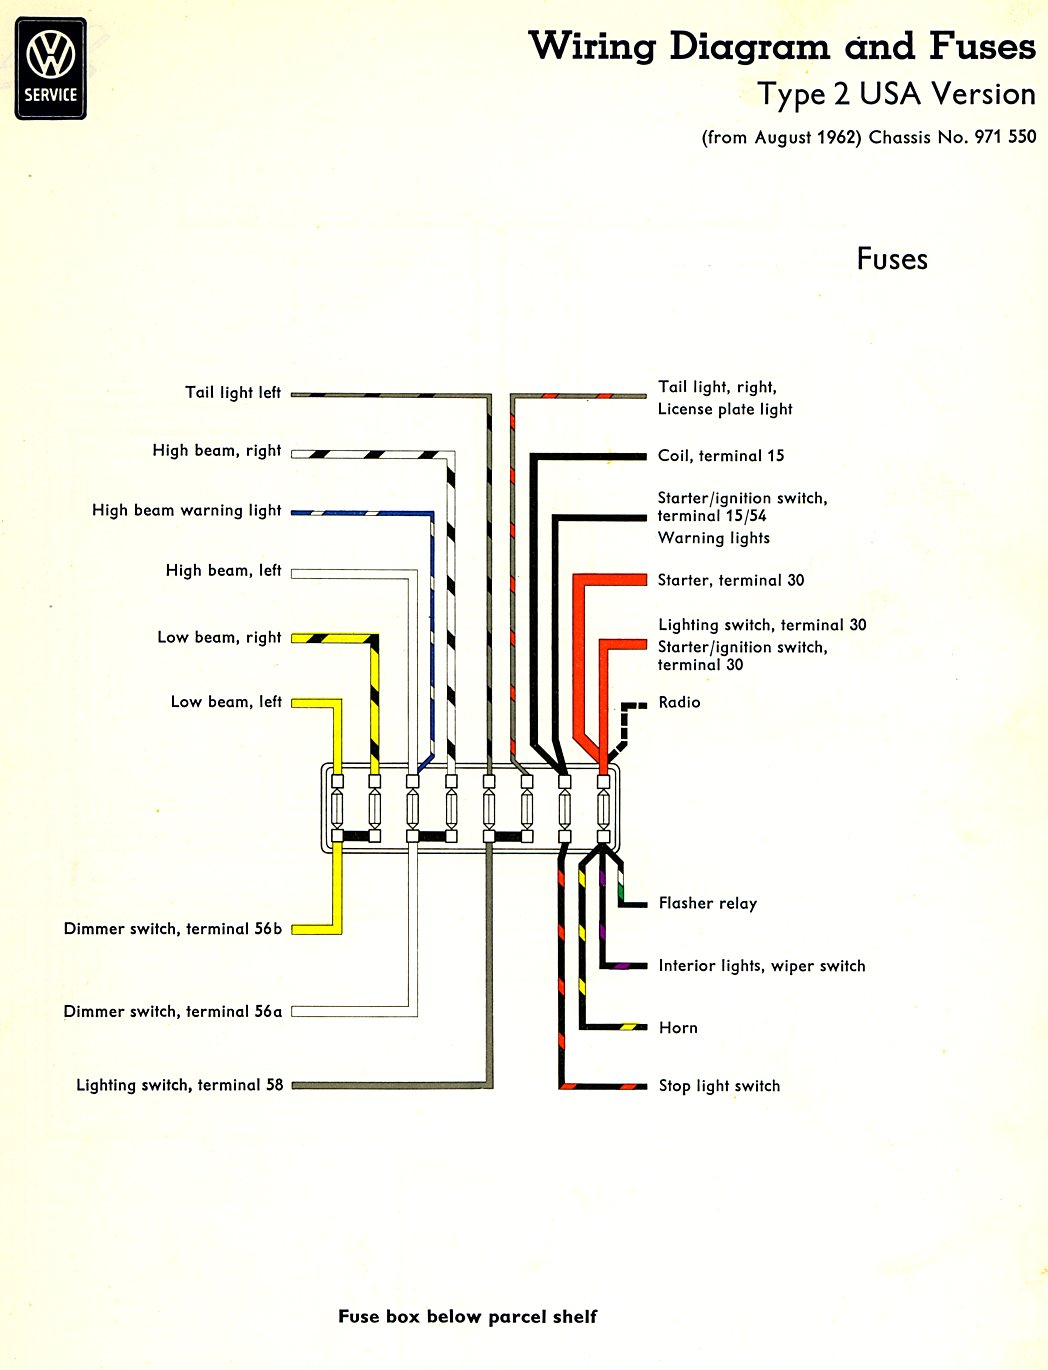 Type 2 Wiring Diagrams Mk4 Jetta Fog Light Diagram